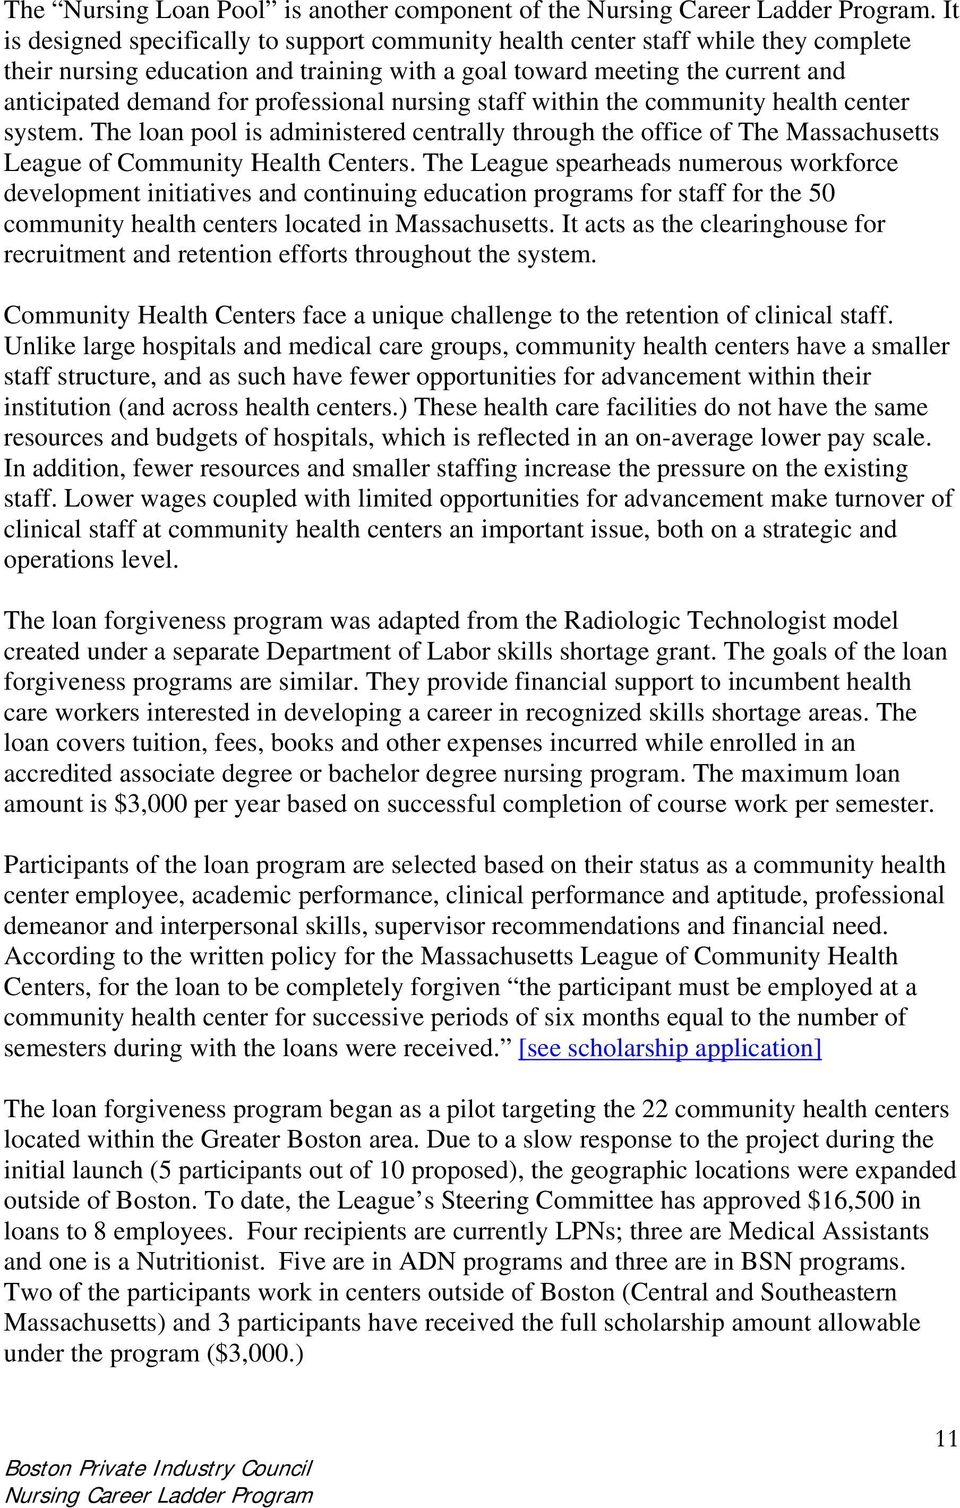 professional nursing staff within the community health center system. The loan pool is administered centrally through the office of The Massachusetts League of Community Health Centers.